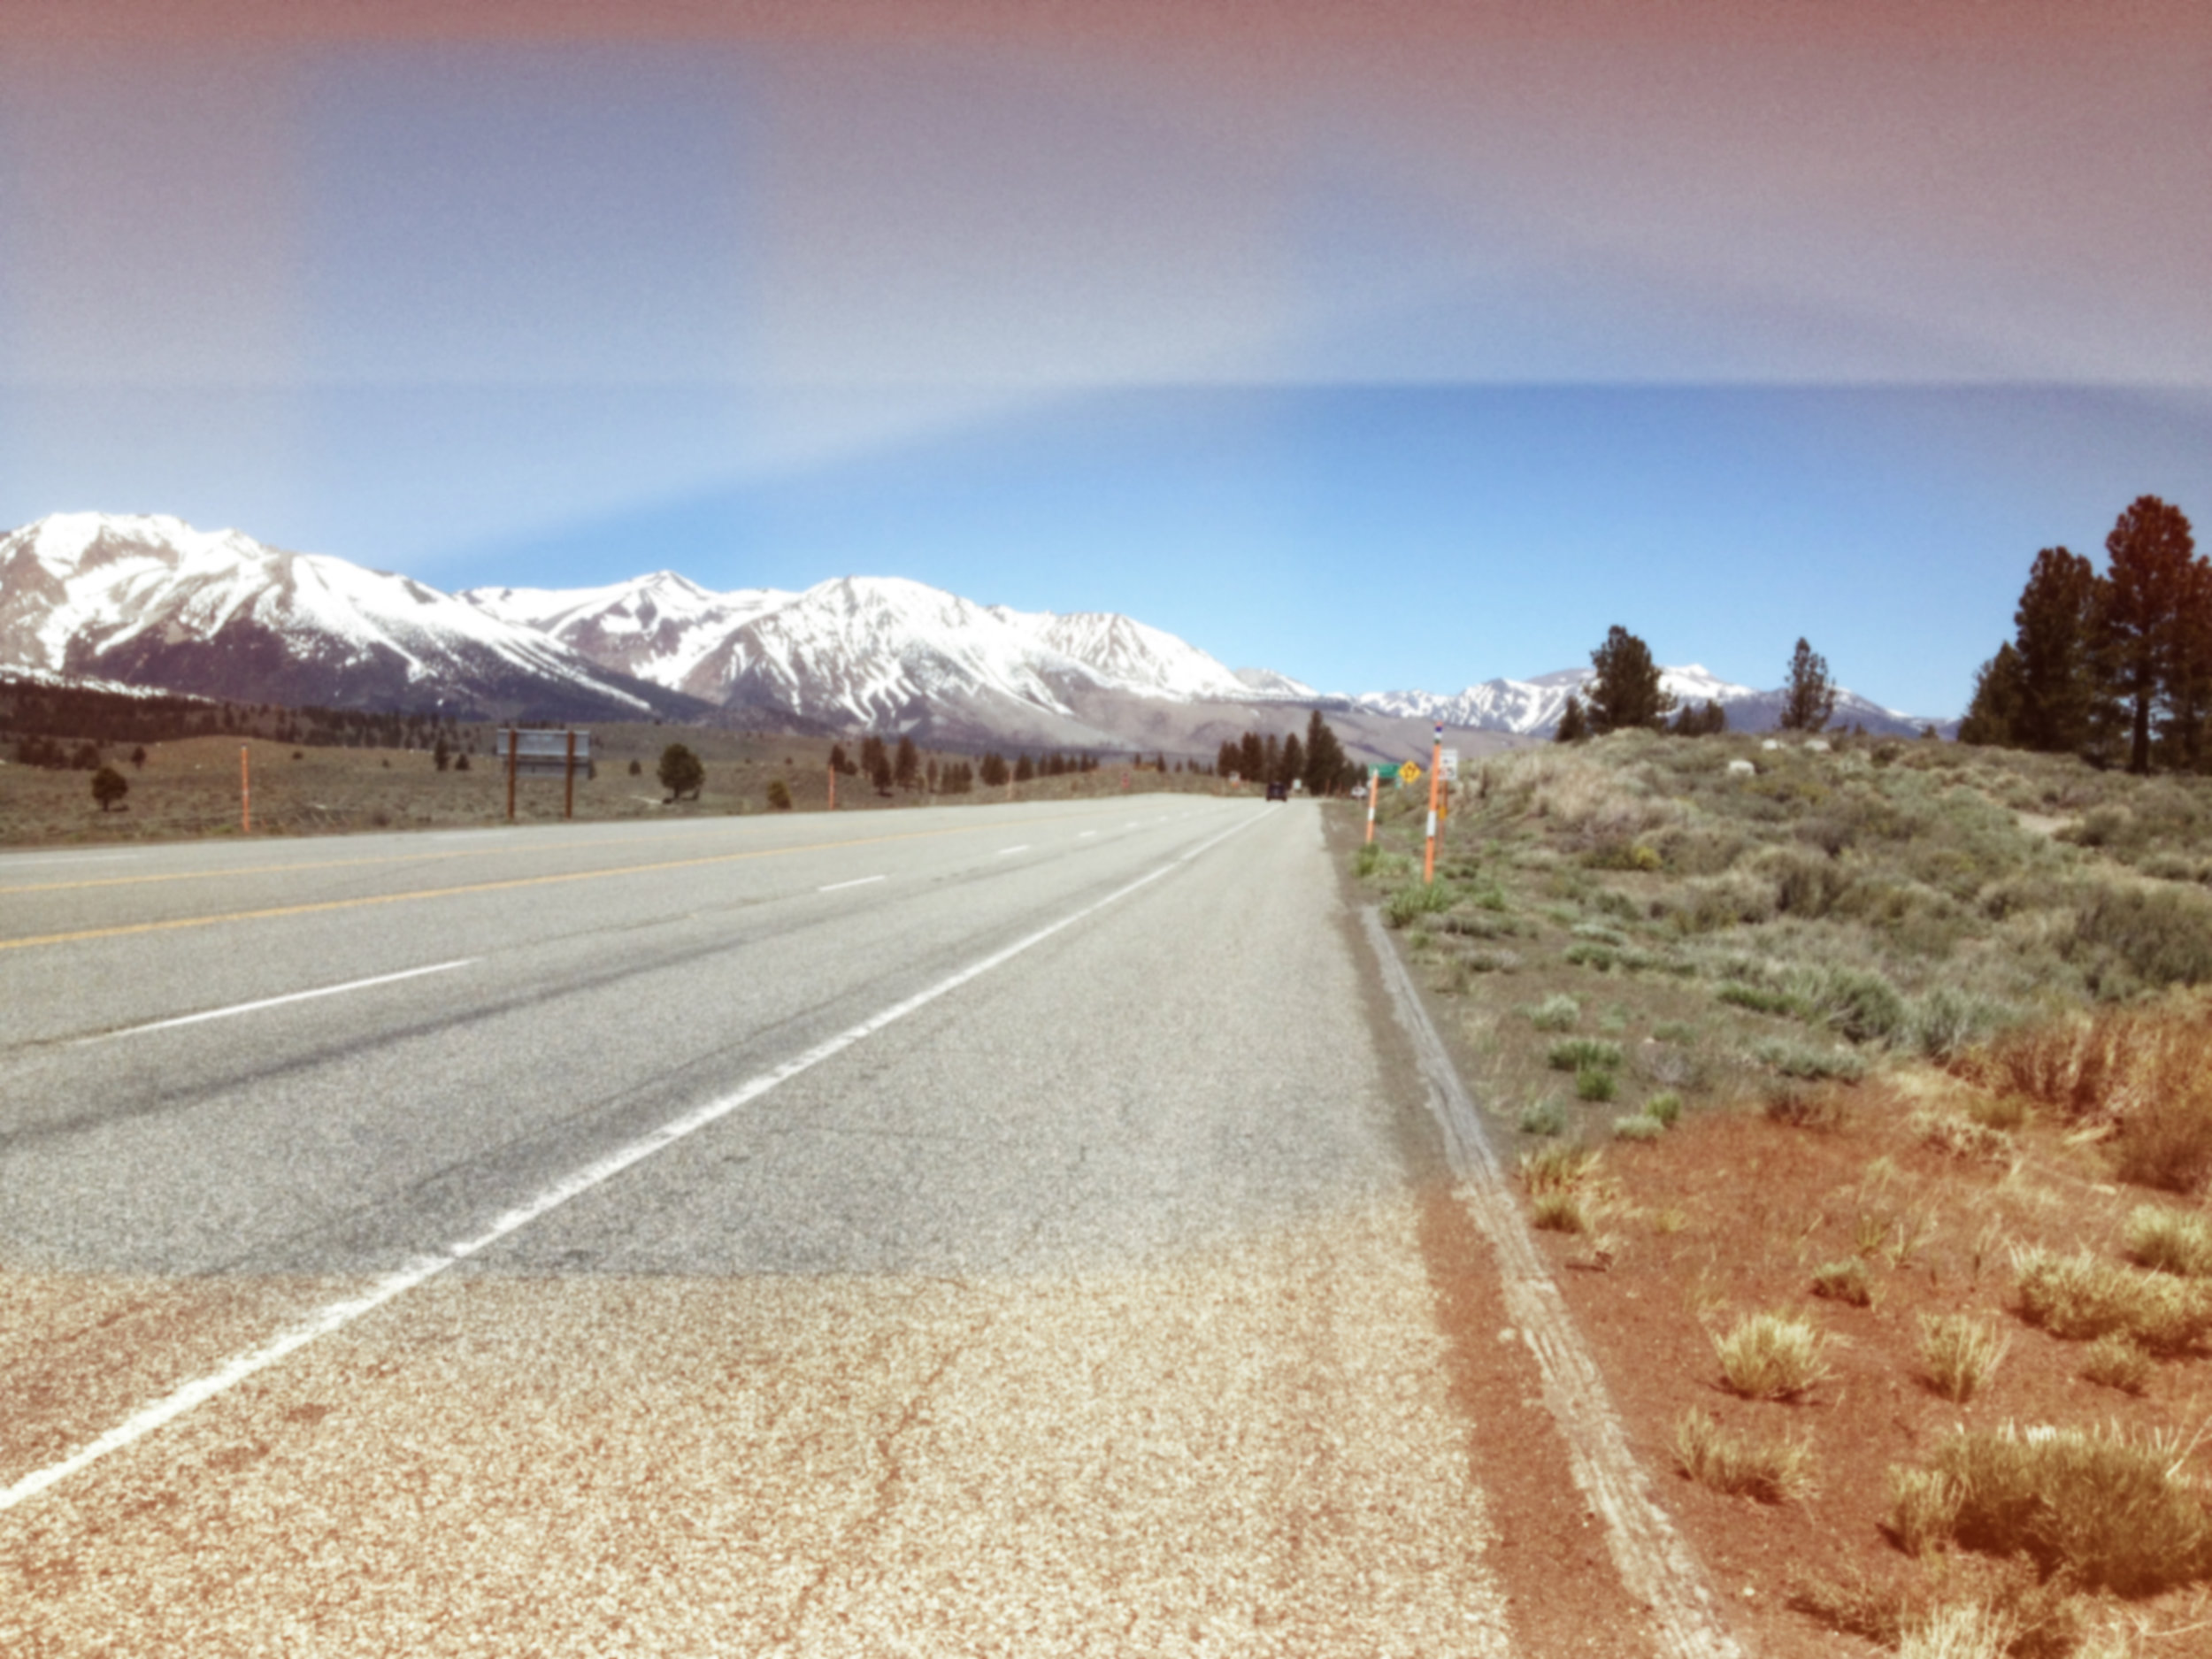 A pretty good spot. Mainly, there's room to pull over and some cool trees to look at.